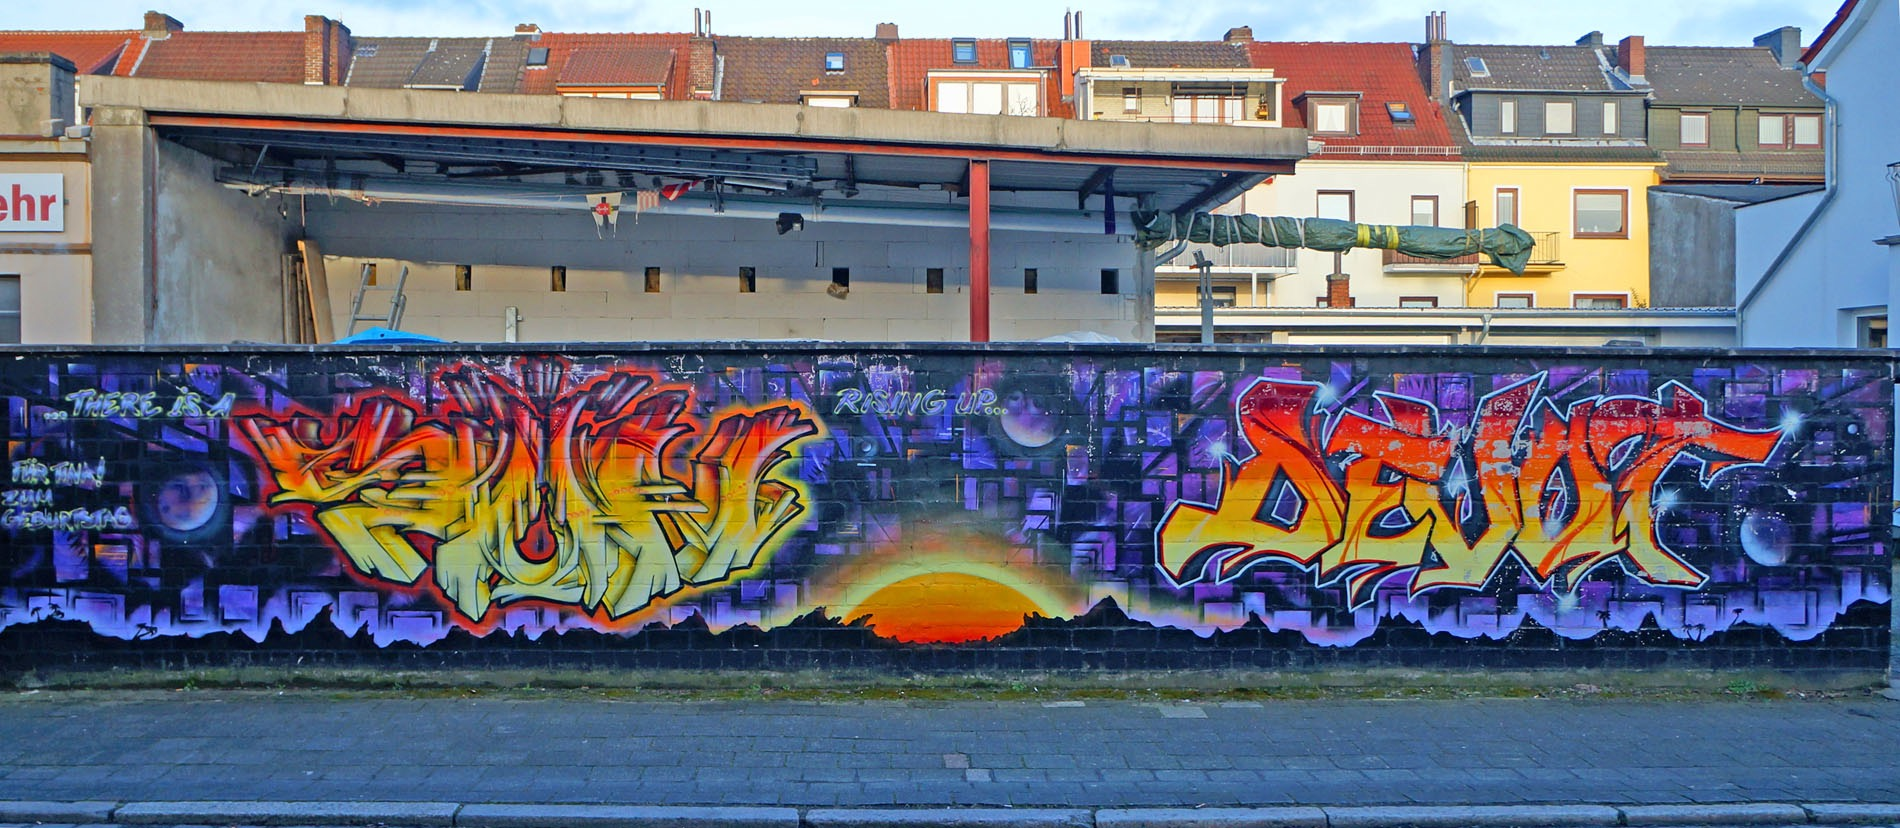 Graffiti_in_Bremen - 026